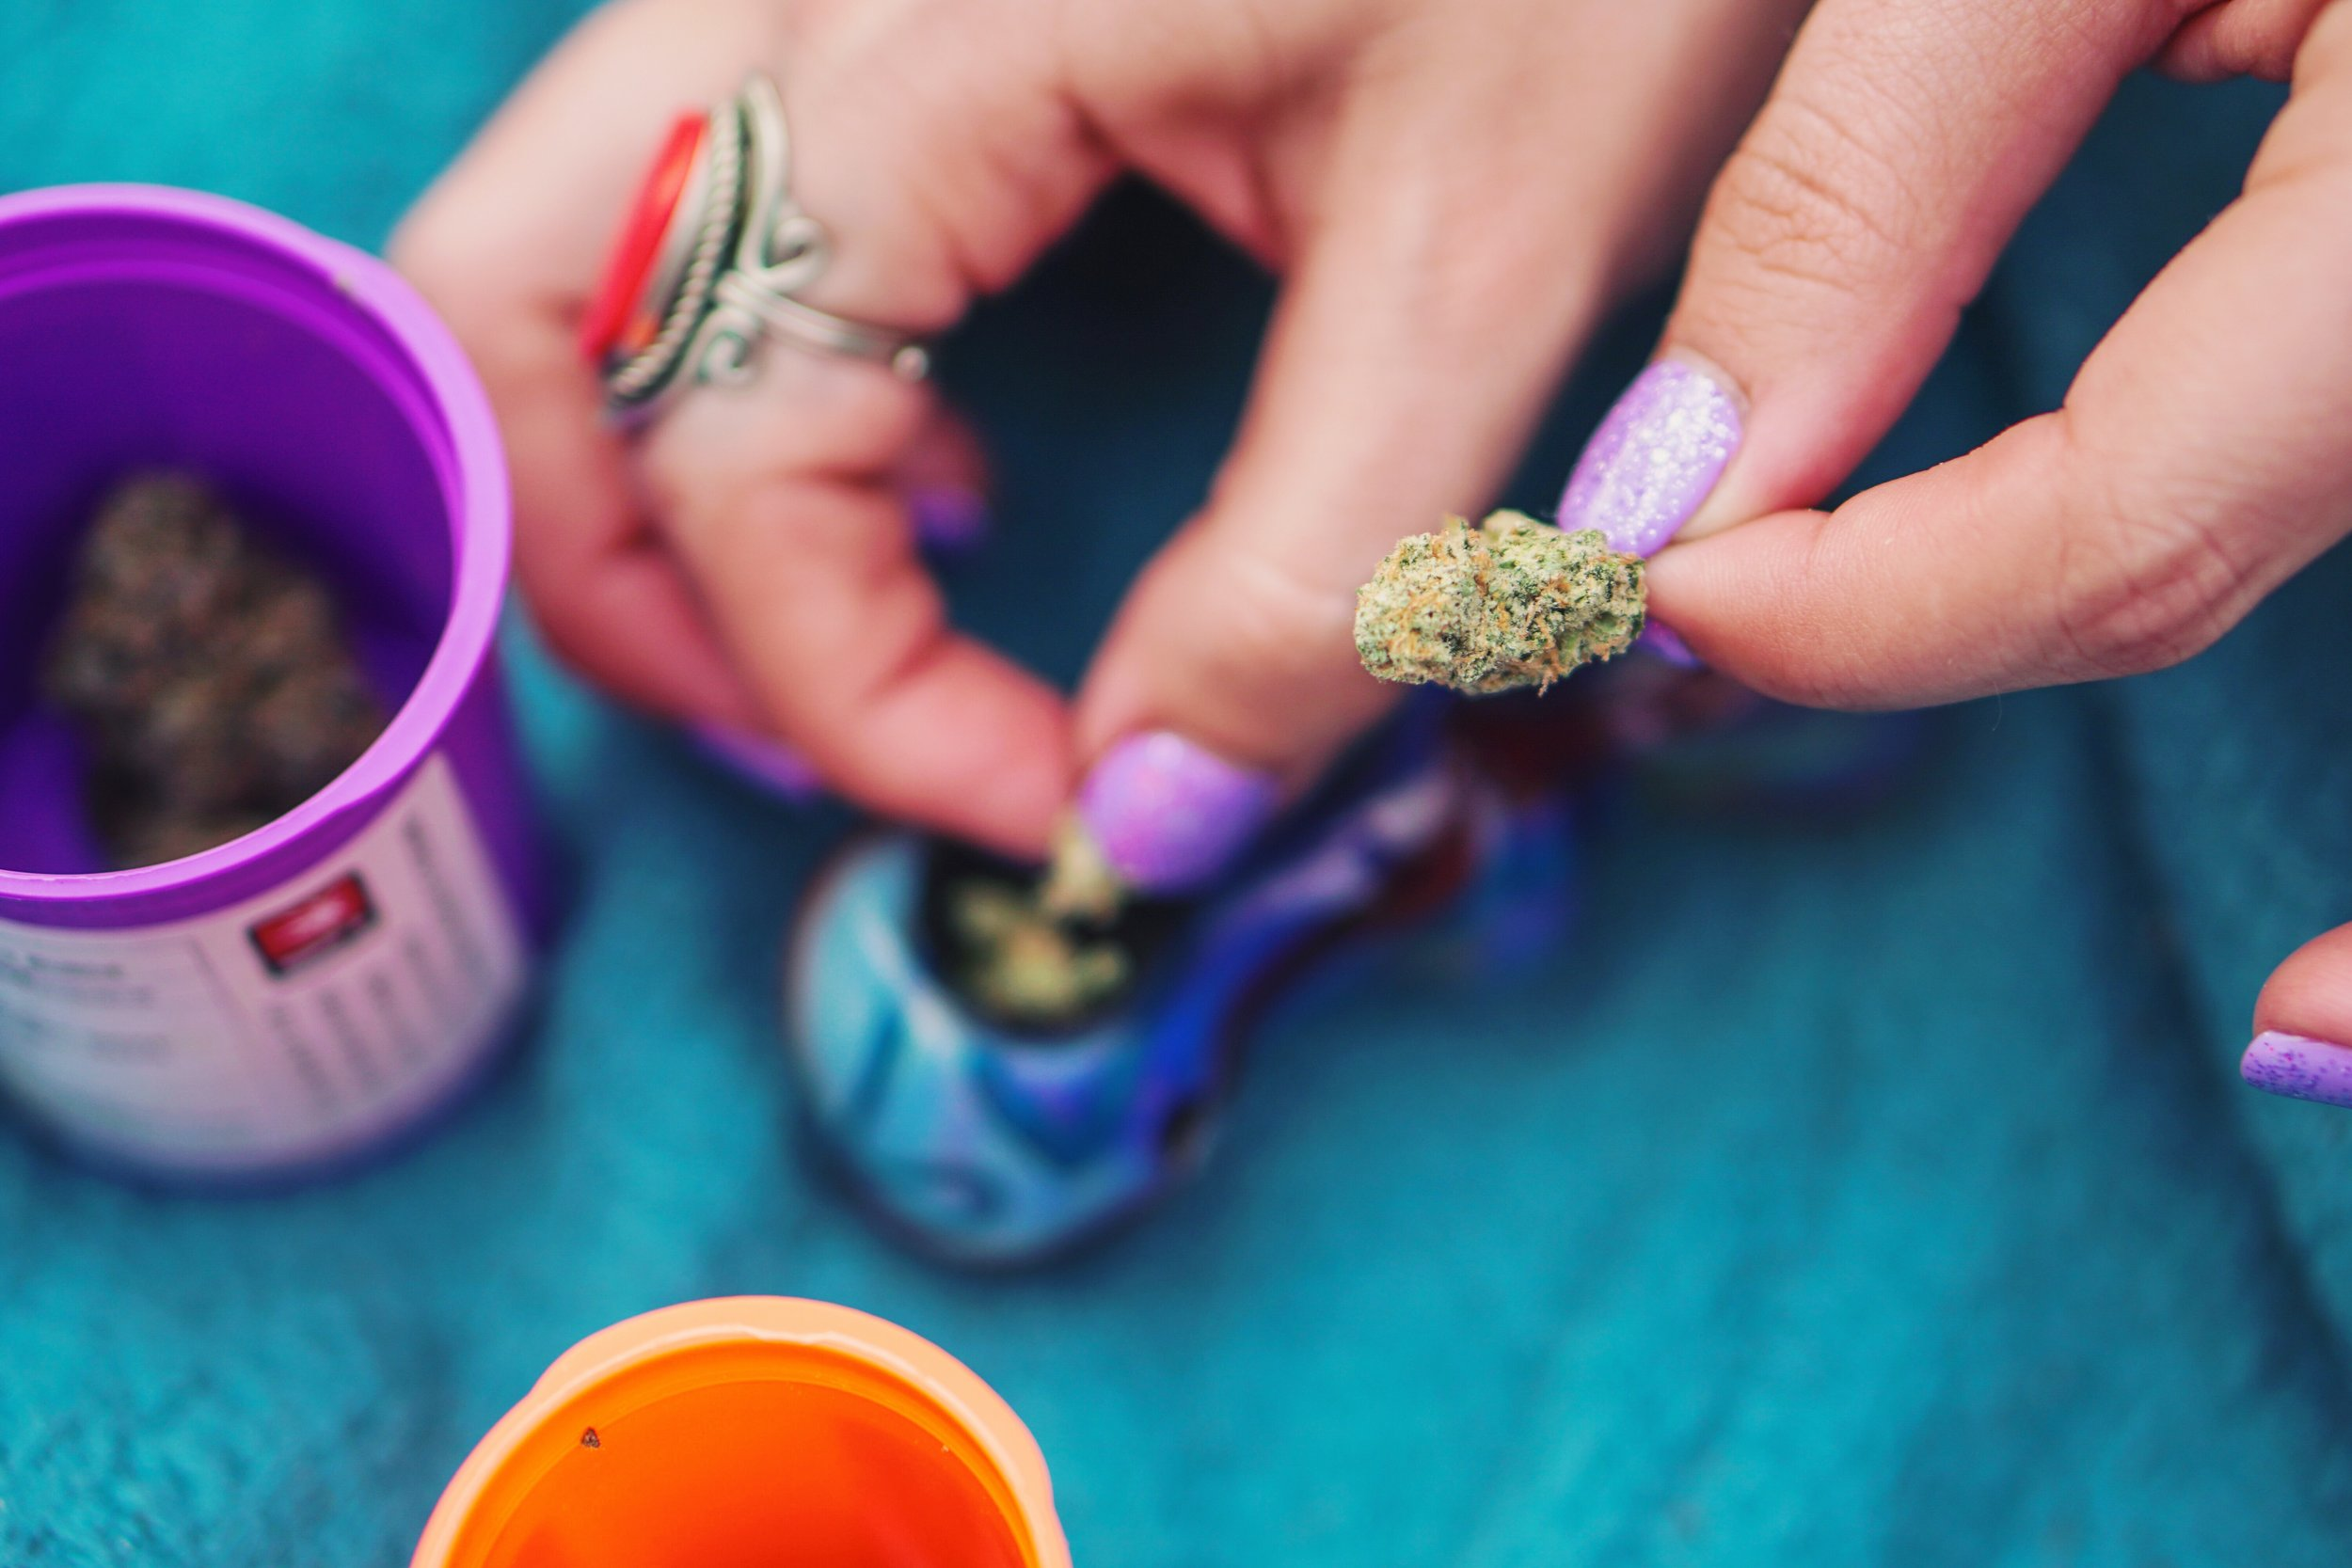 female-breaking-up-cannabis-flower-and-loading-it-into-a-pipe-on-a-blue-blanket_t20_goZZGz.jpg